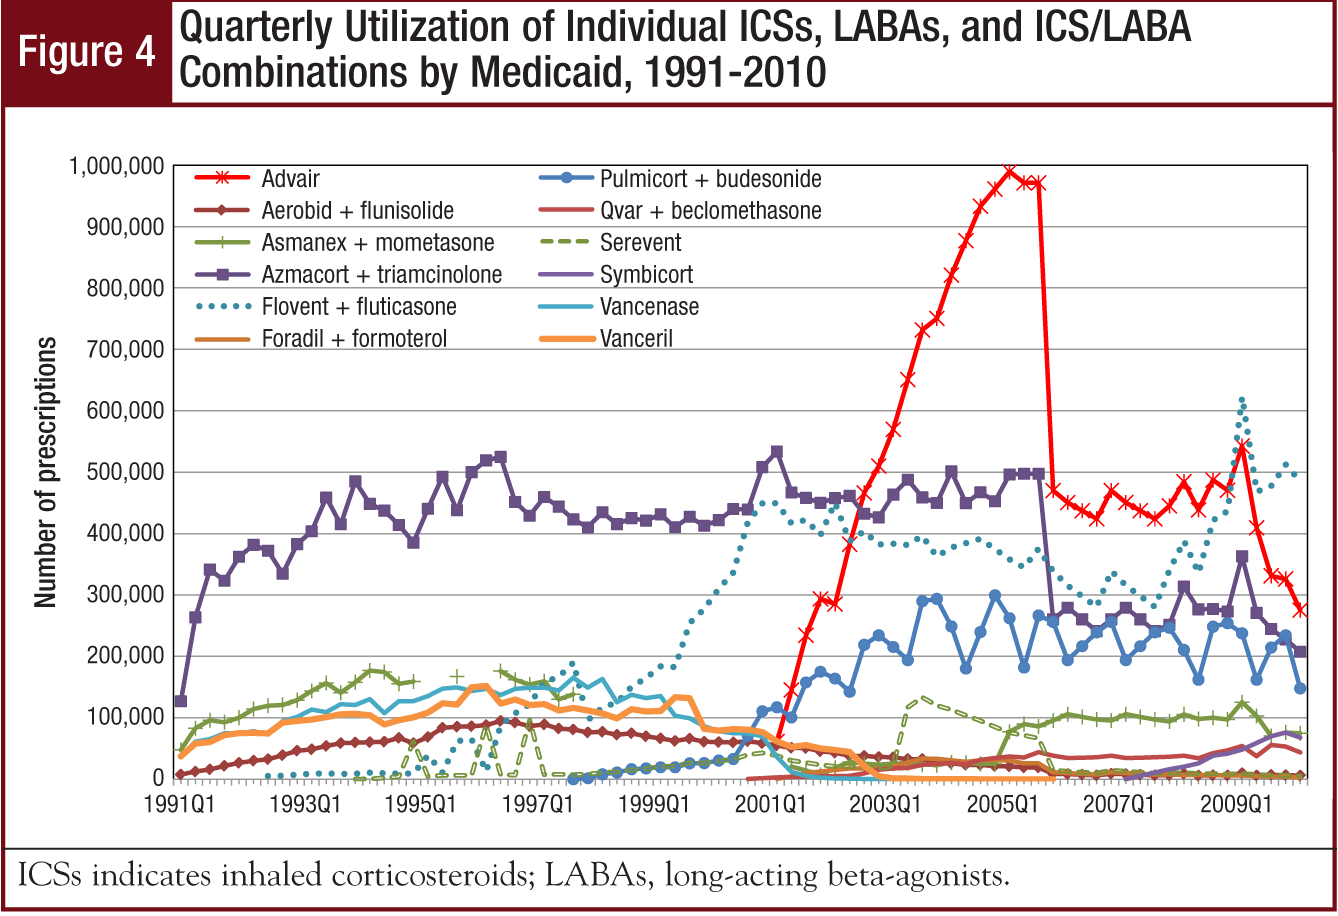 Figure 4 - Quarterly Utilization of Individual ICSs, LABAs, and ICS/LABA Combinations by Medicaid, 1991-2010